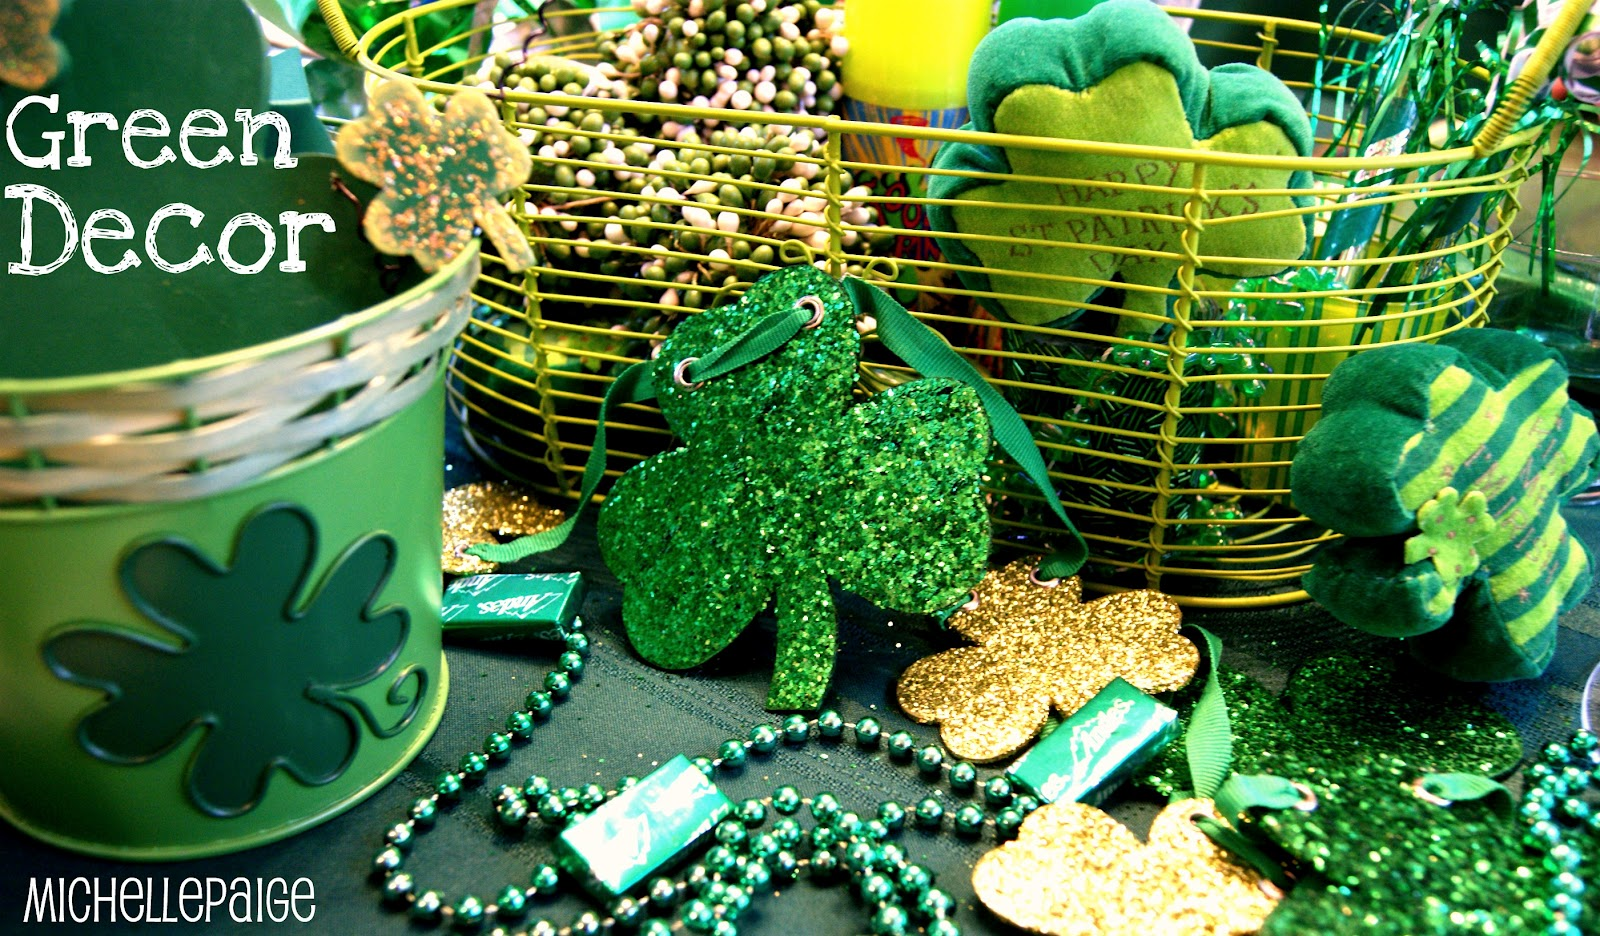 Michelle paige blogs st patrick 39 s day breakfast for St patricks day home decorations